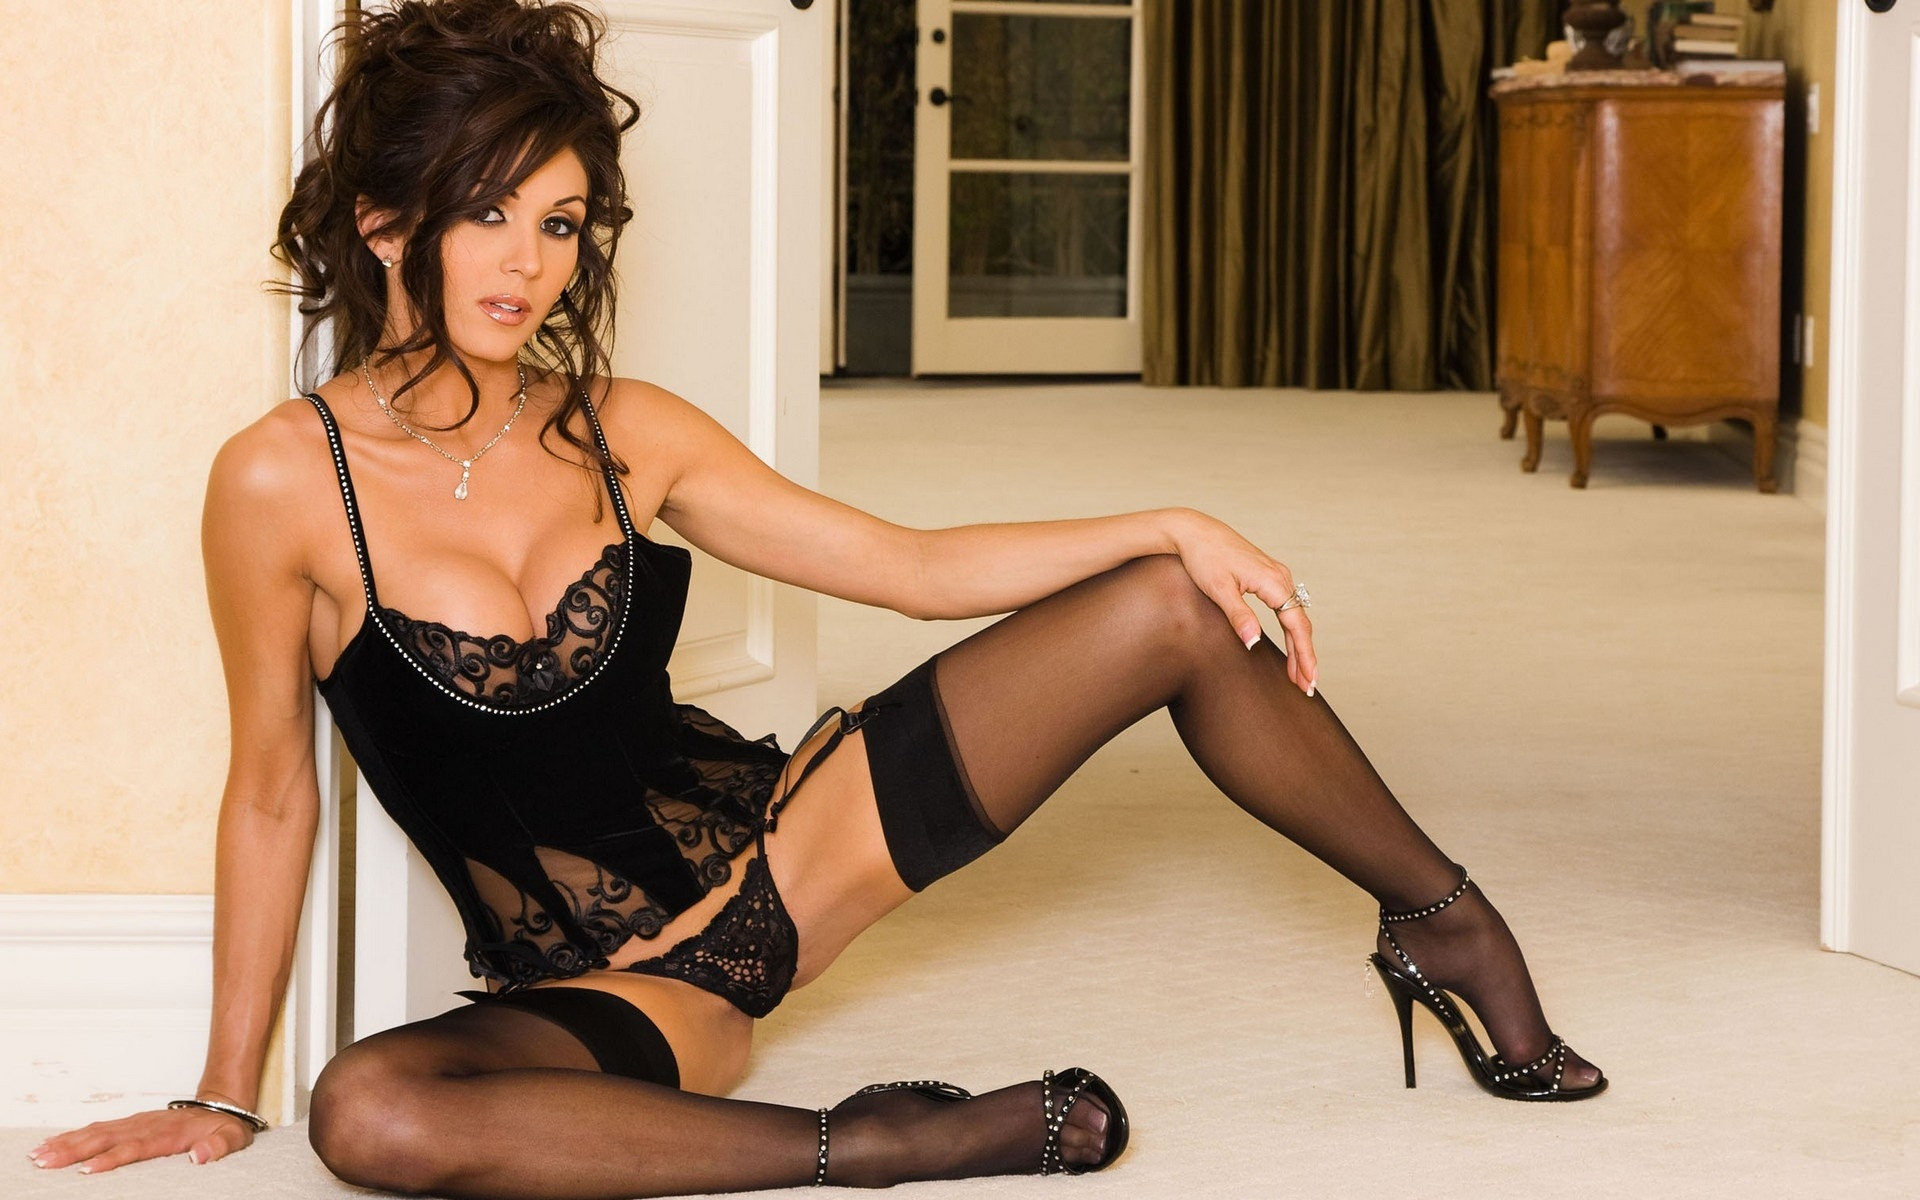 black stockings high heels and wife wants me to wear a bra